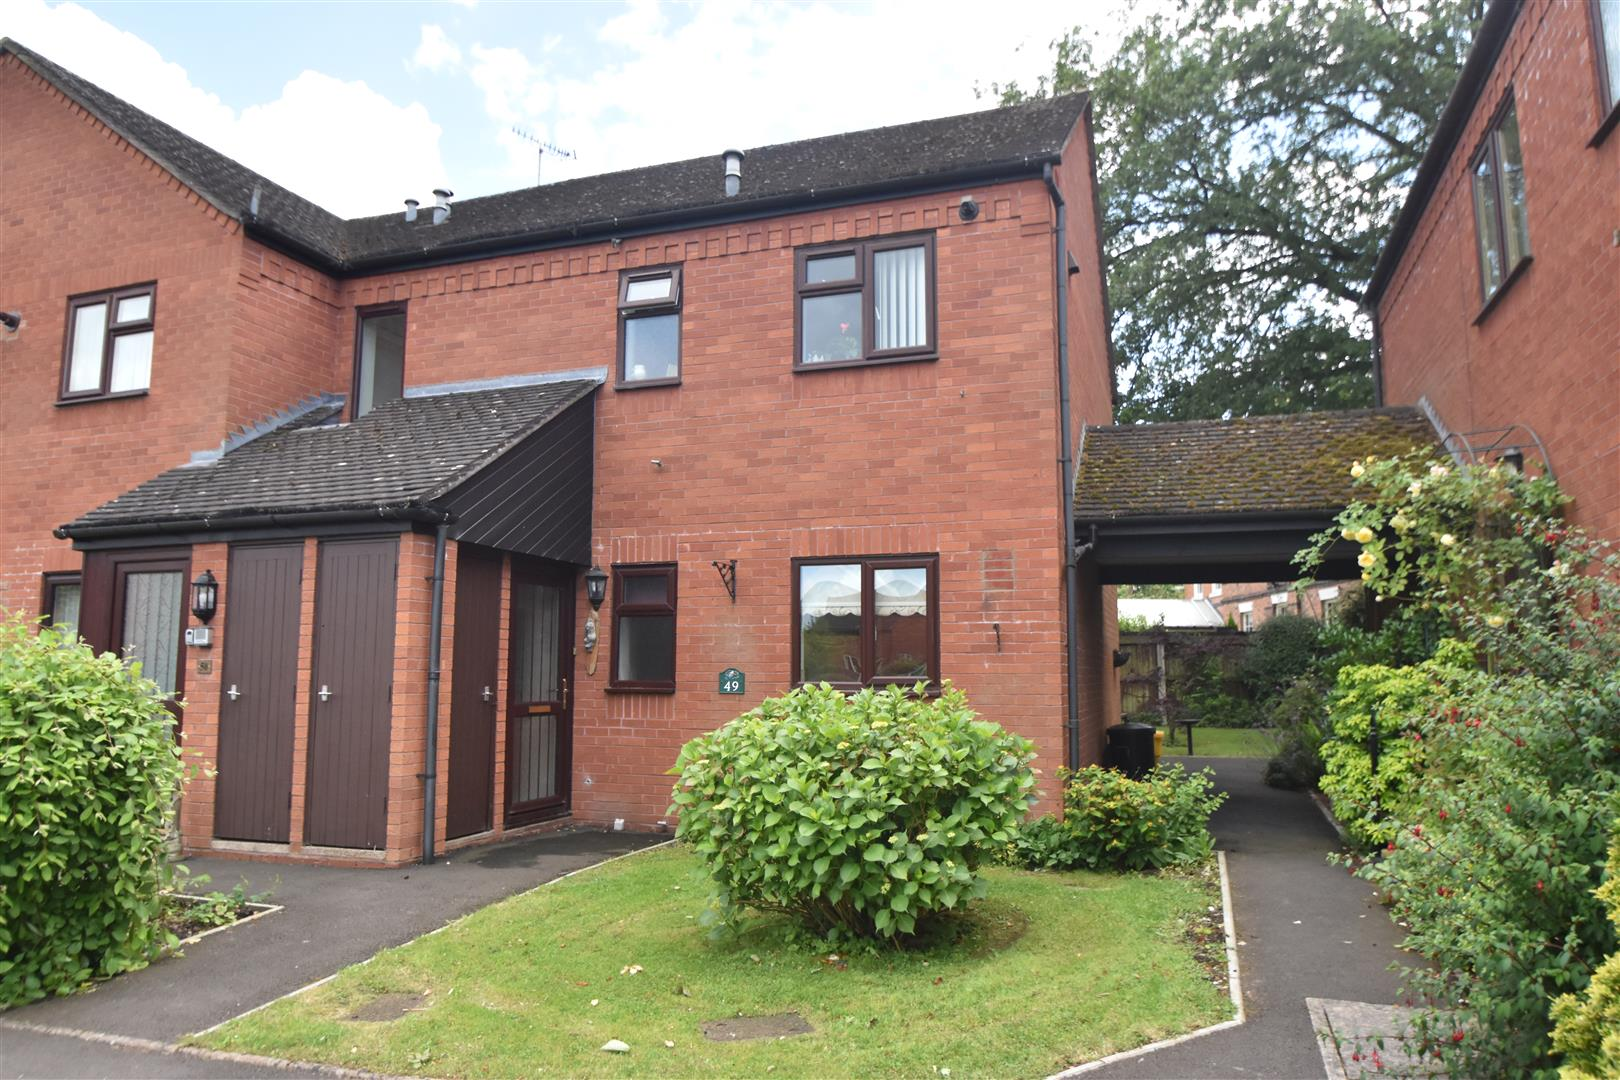 1 Bedroom Property for sale in St. Georges Crescent, Droitwich